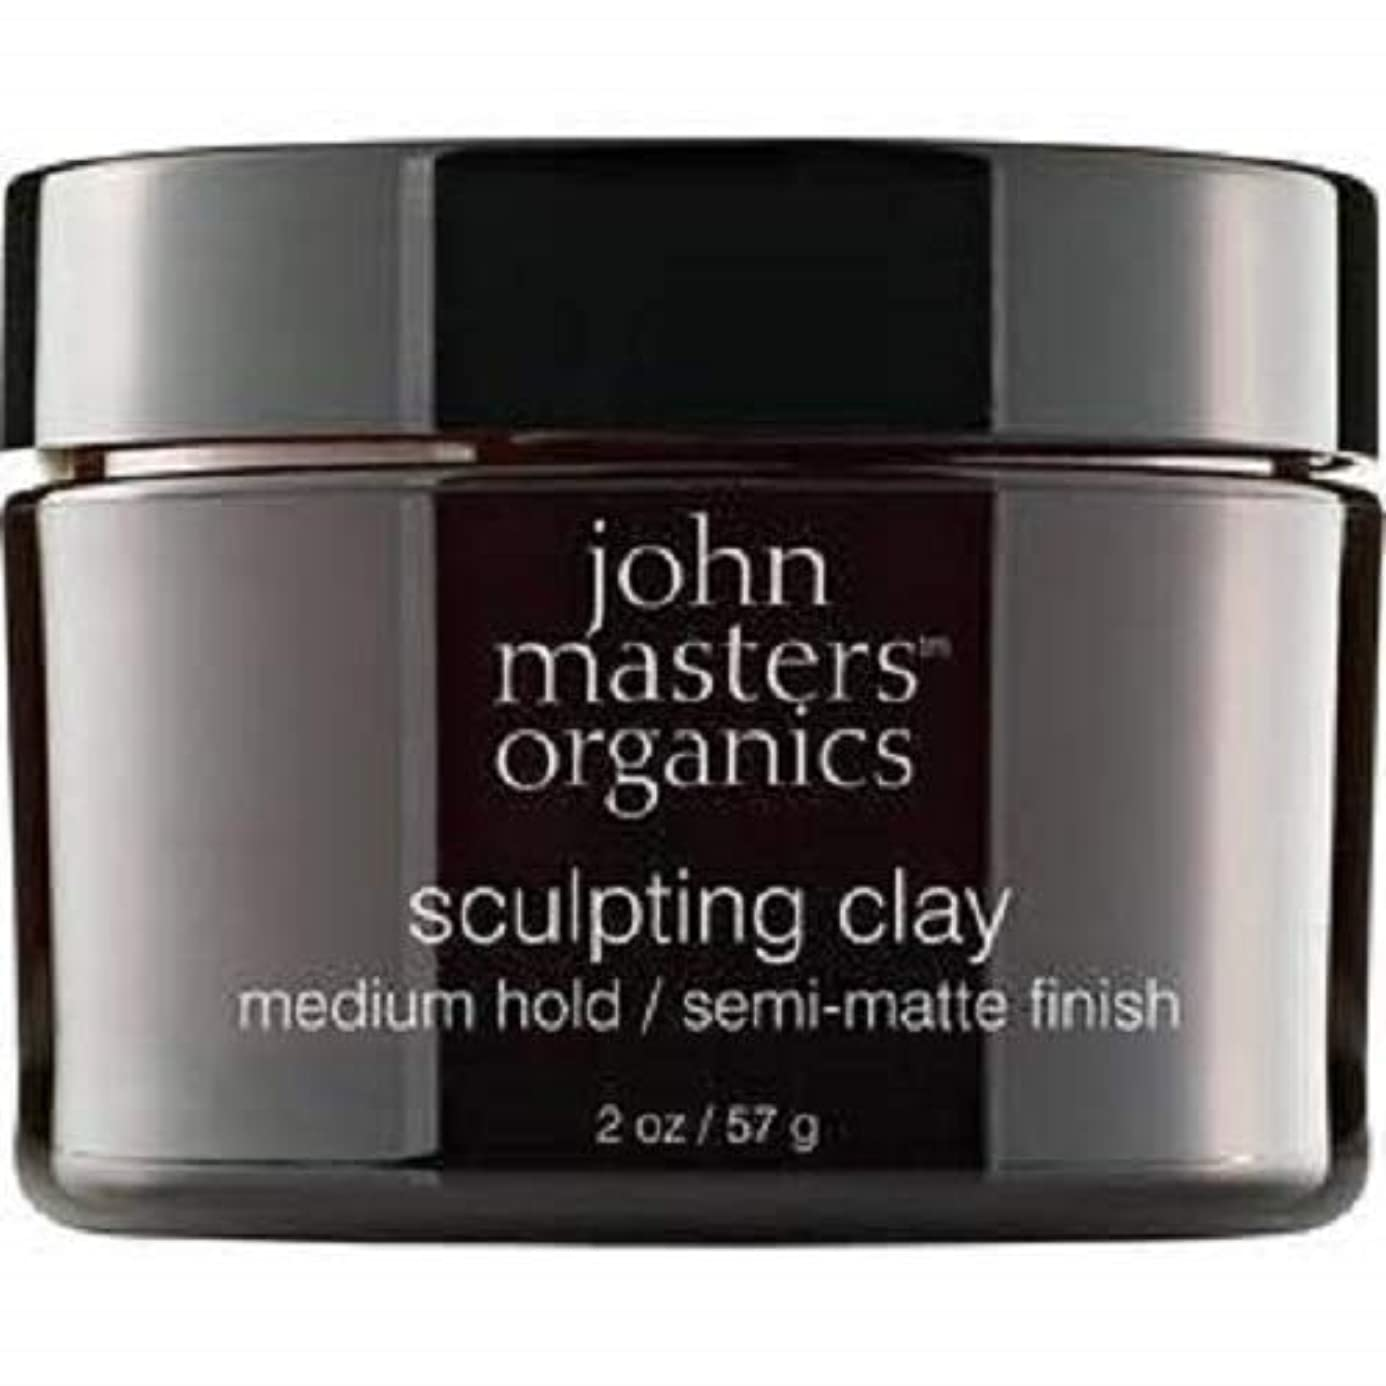 むしろ流す管理者John Masters Organics Sculpting Clay medium hold / semi-matt finish 2 OZ,57 g